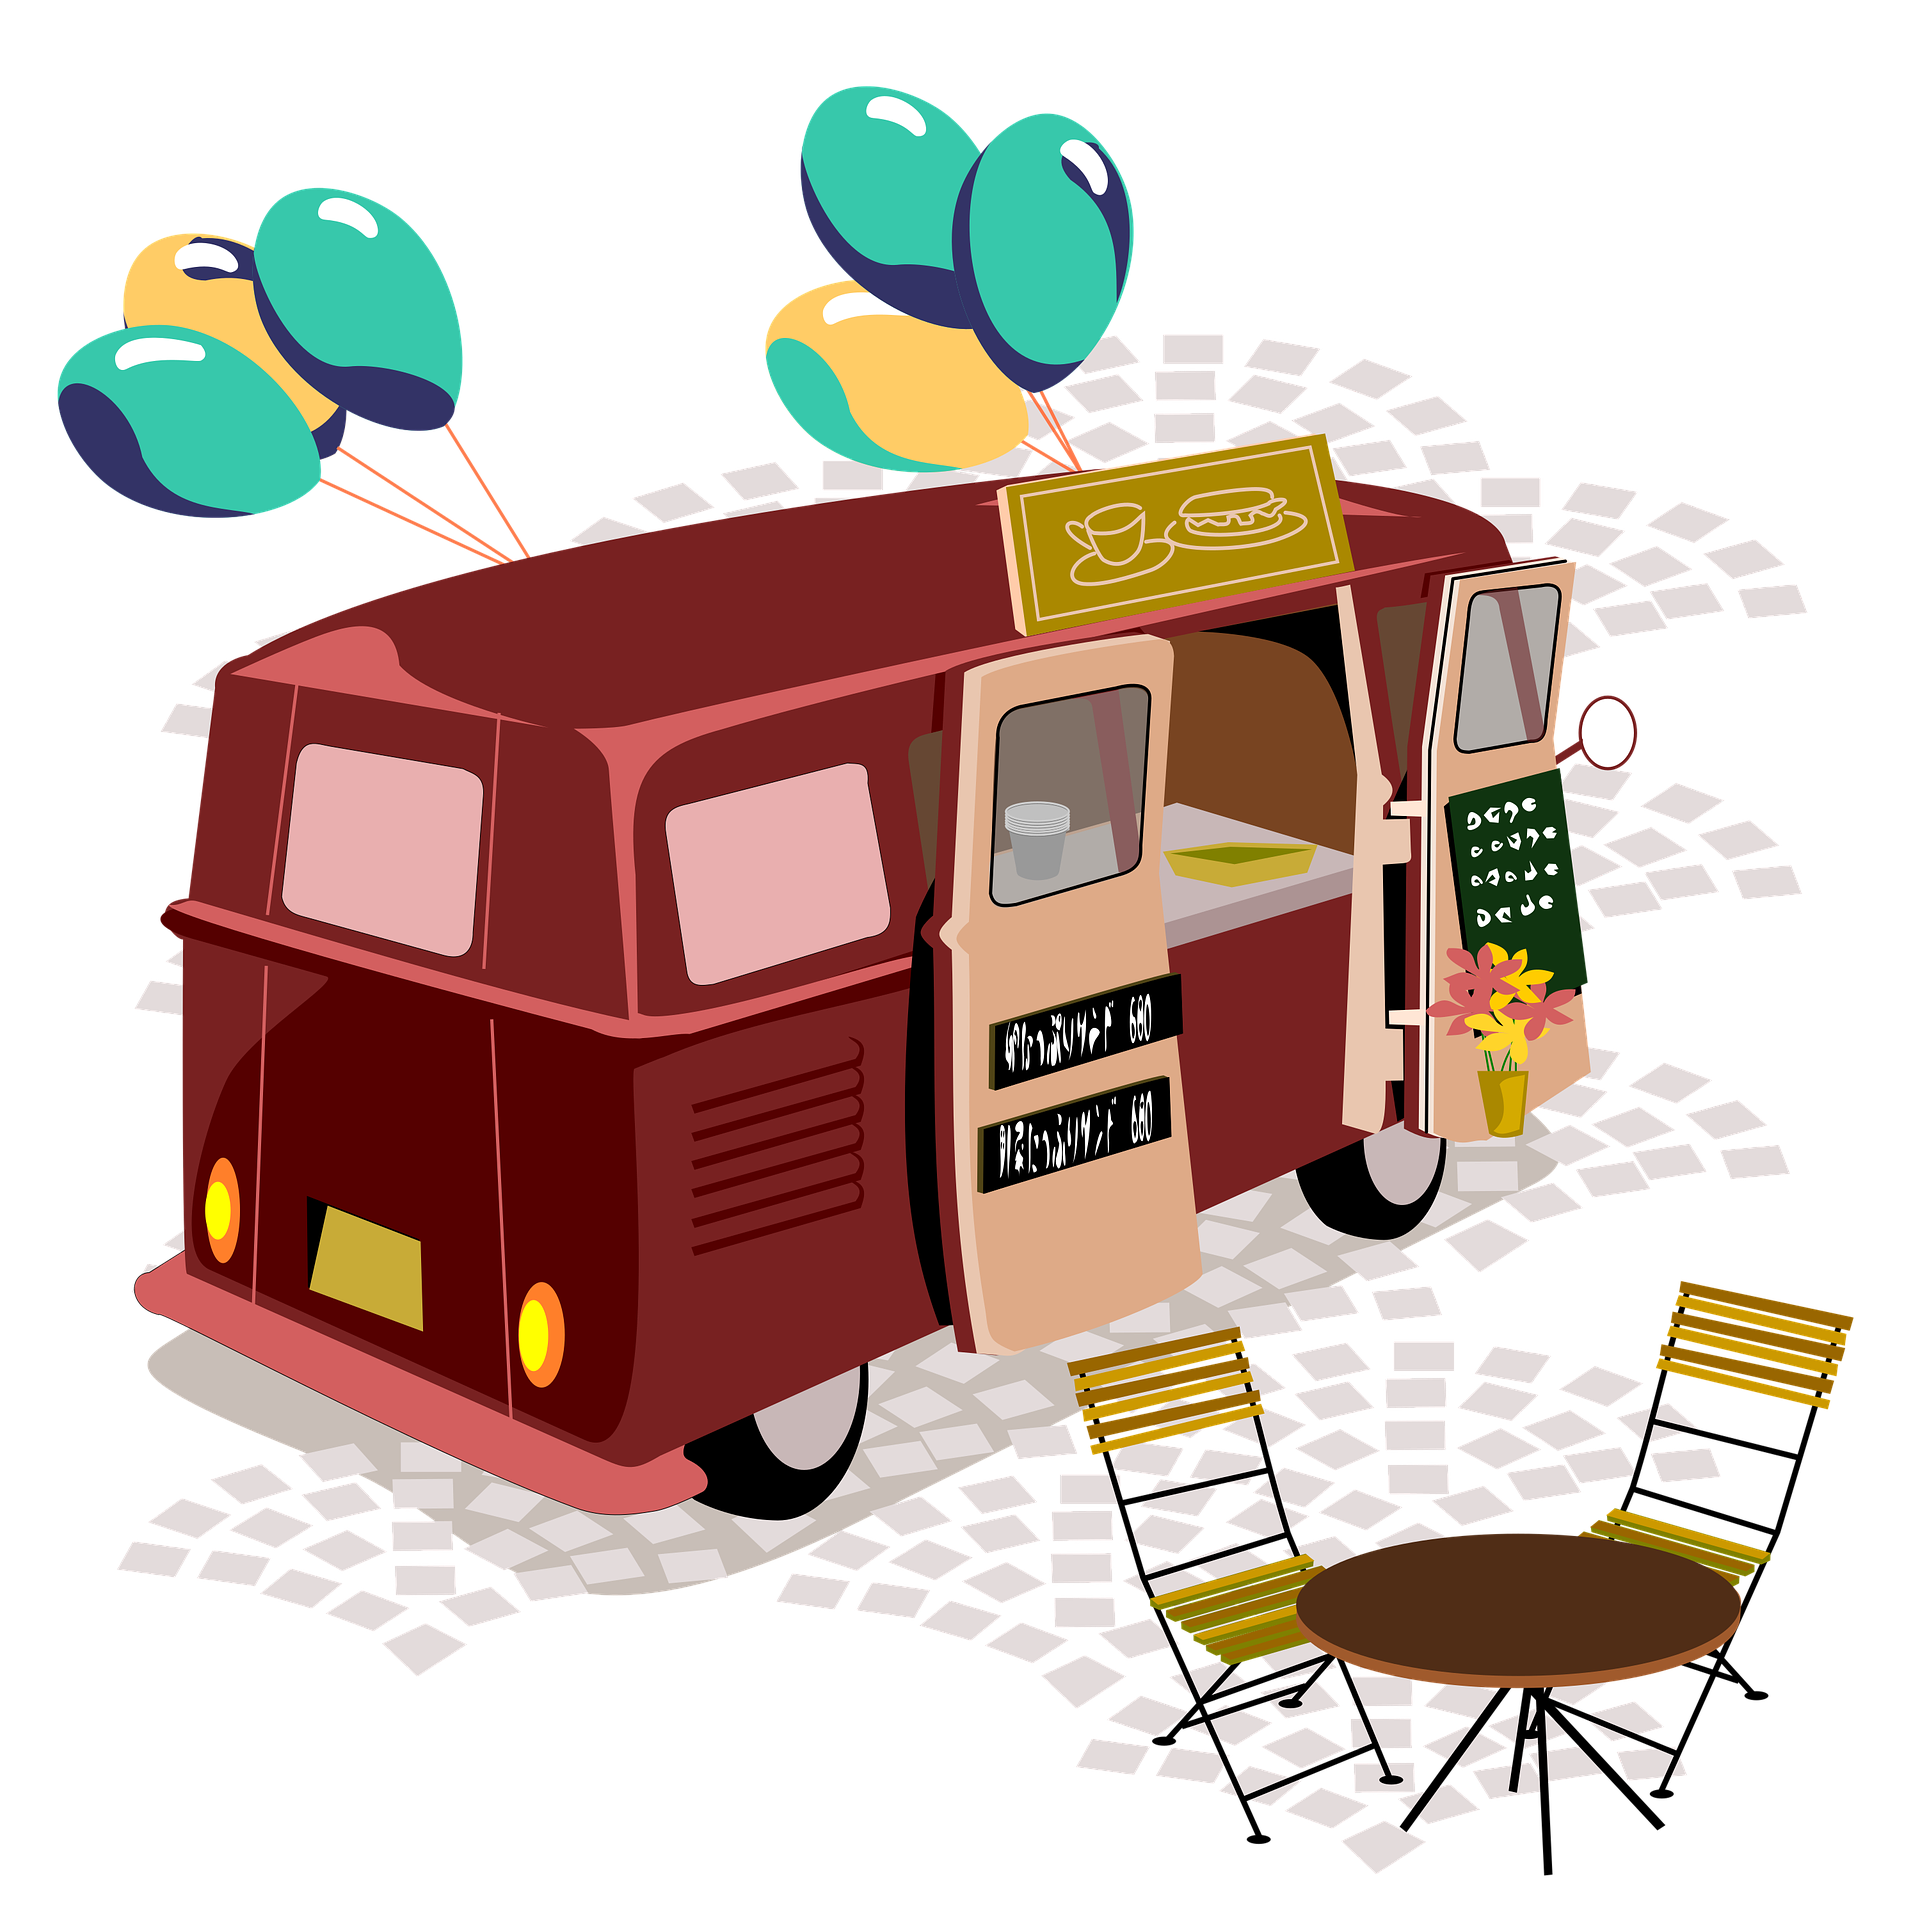 How To Make Profit From A Food Truck Business In 2020 Food Truck Business Plan Food Truck Business Food Business Ideas